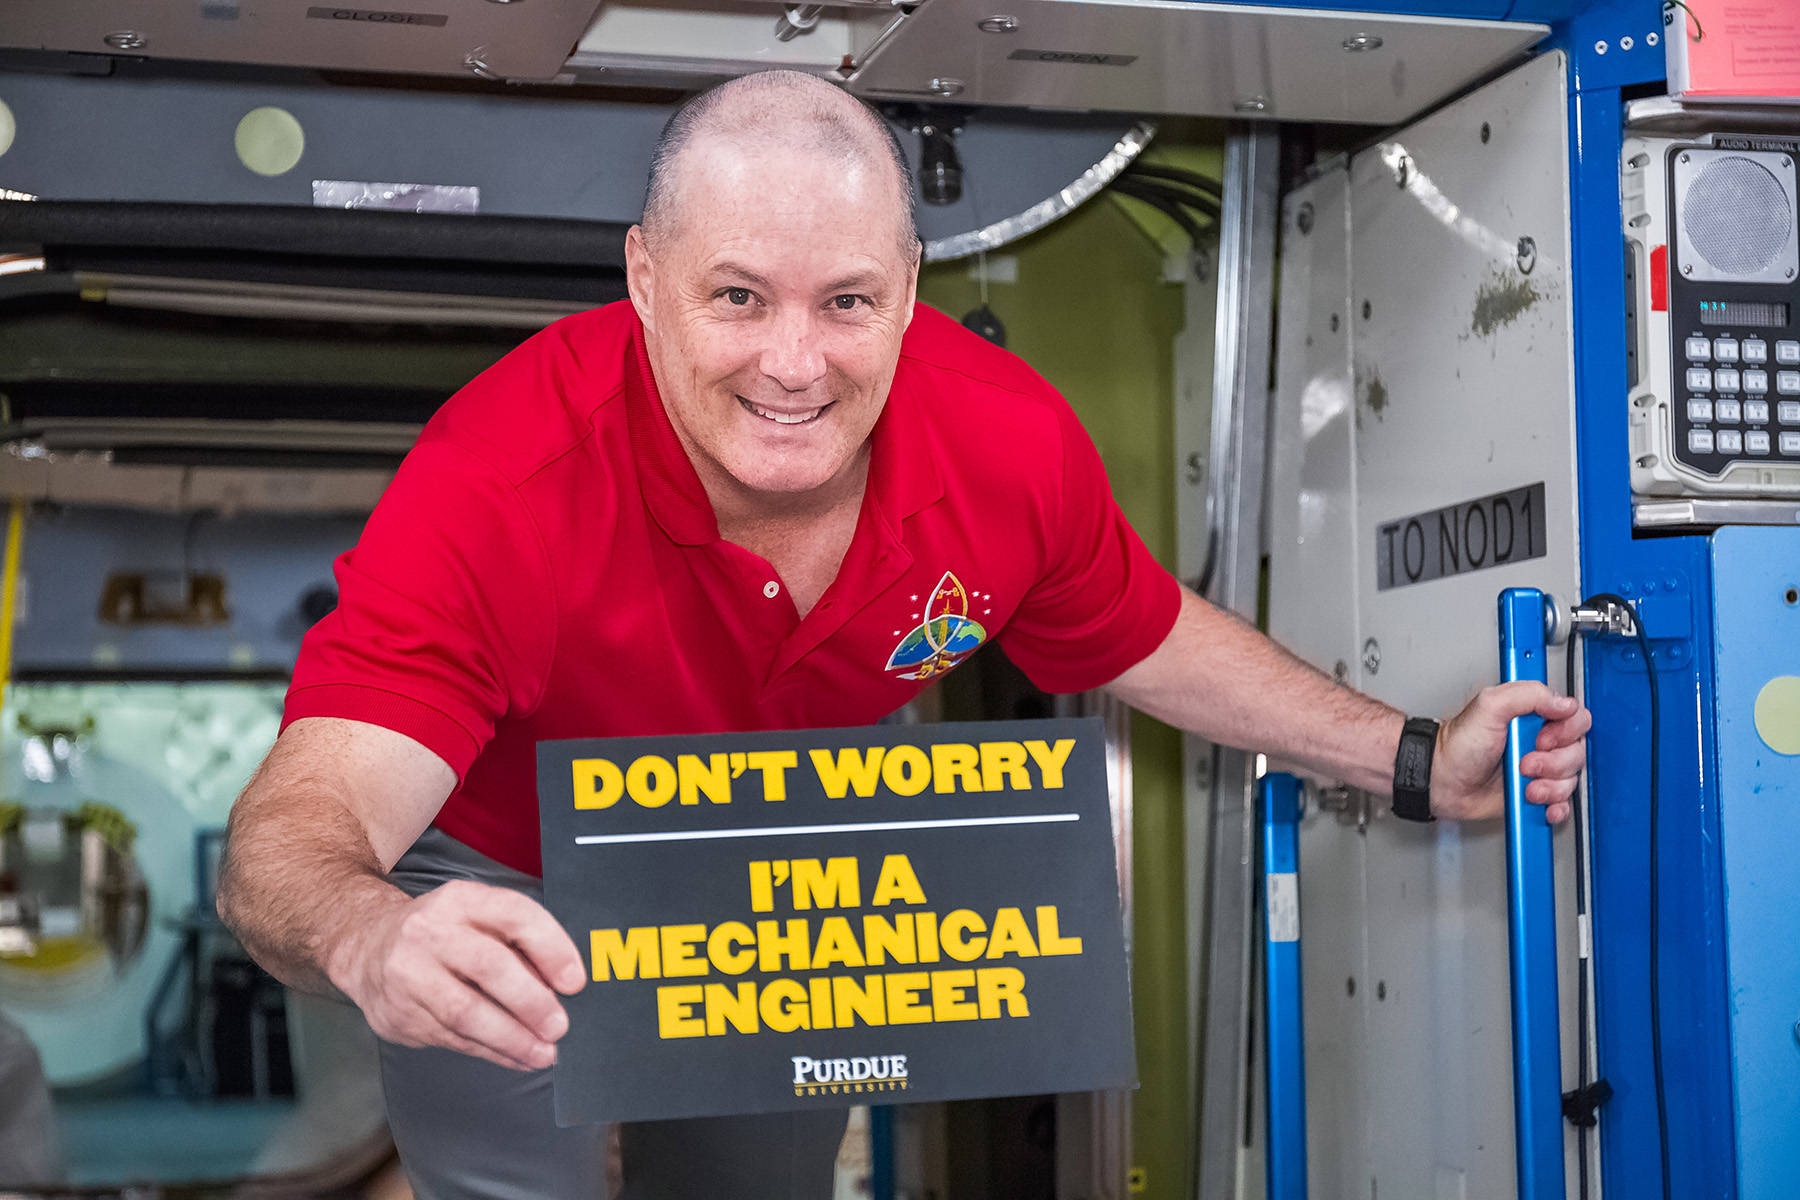 Scott Tingle holding up a sign that says - Don't worry, I'm a Mechanical Engineer - Purdue University